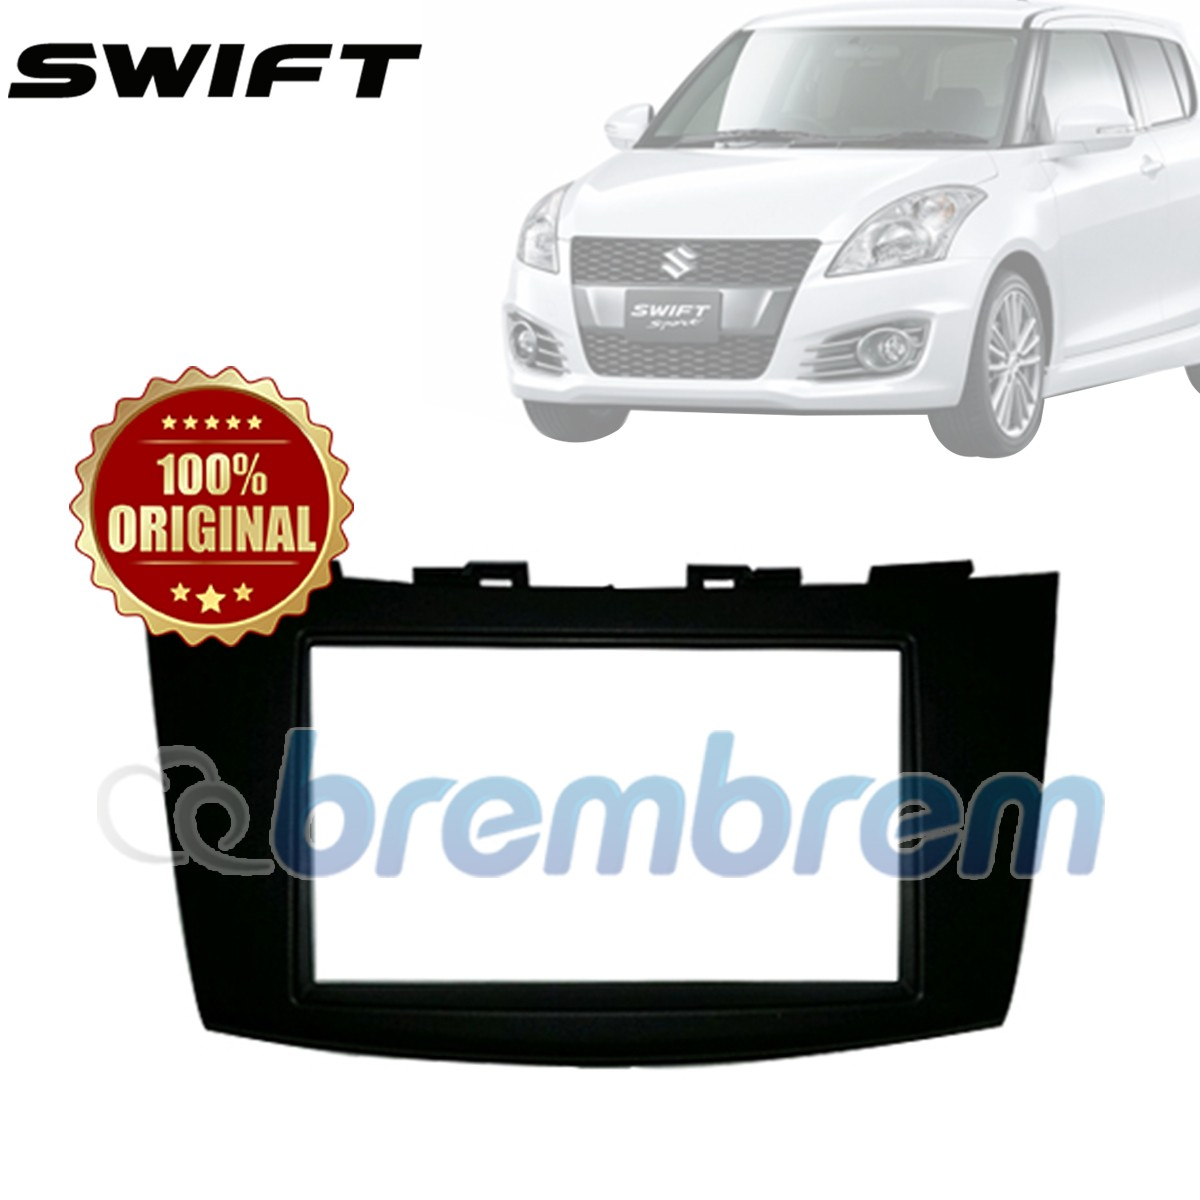 FRAME HEAD UNIT SUZUKI SWIFT 2011+